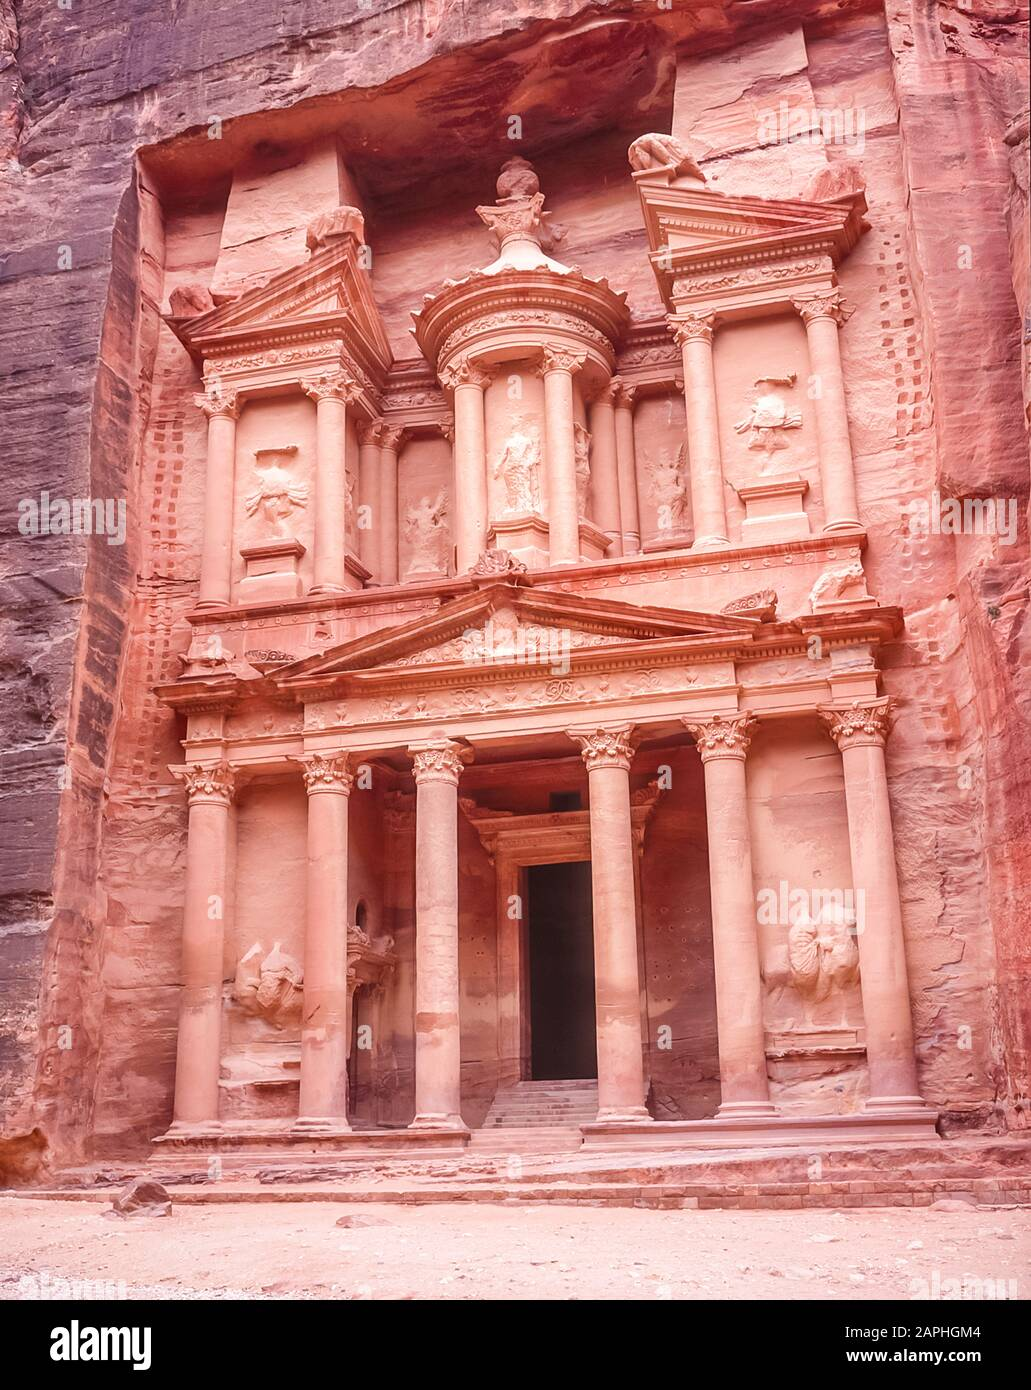 Jordan. The Treasury Building, the Khazaneh at the entrance to the World famous UNESCO World Heritage Site of the Nabatean and Roman  ruins and relics at the desert town of Petra much used as a motion picture film set such as Indiana Jones Temple of Doom, now a very popular tourist attraction. Of interest is that the carvings of of people perhaps Gods have no faces or legs. These were hacked or shot off during early Islamic times as images of Infidels Stock Photo